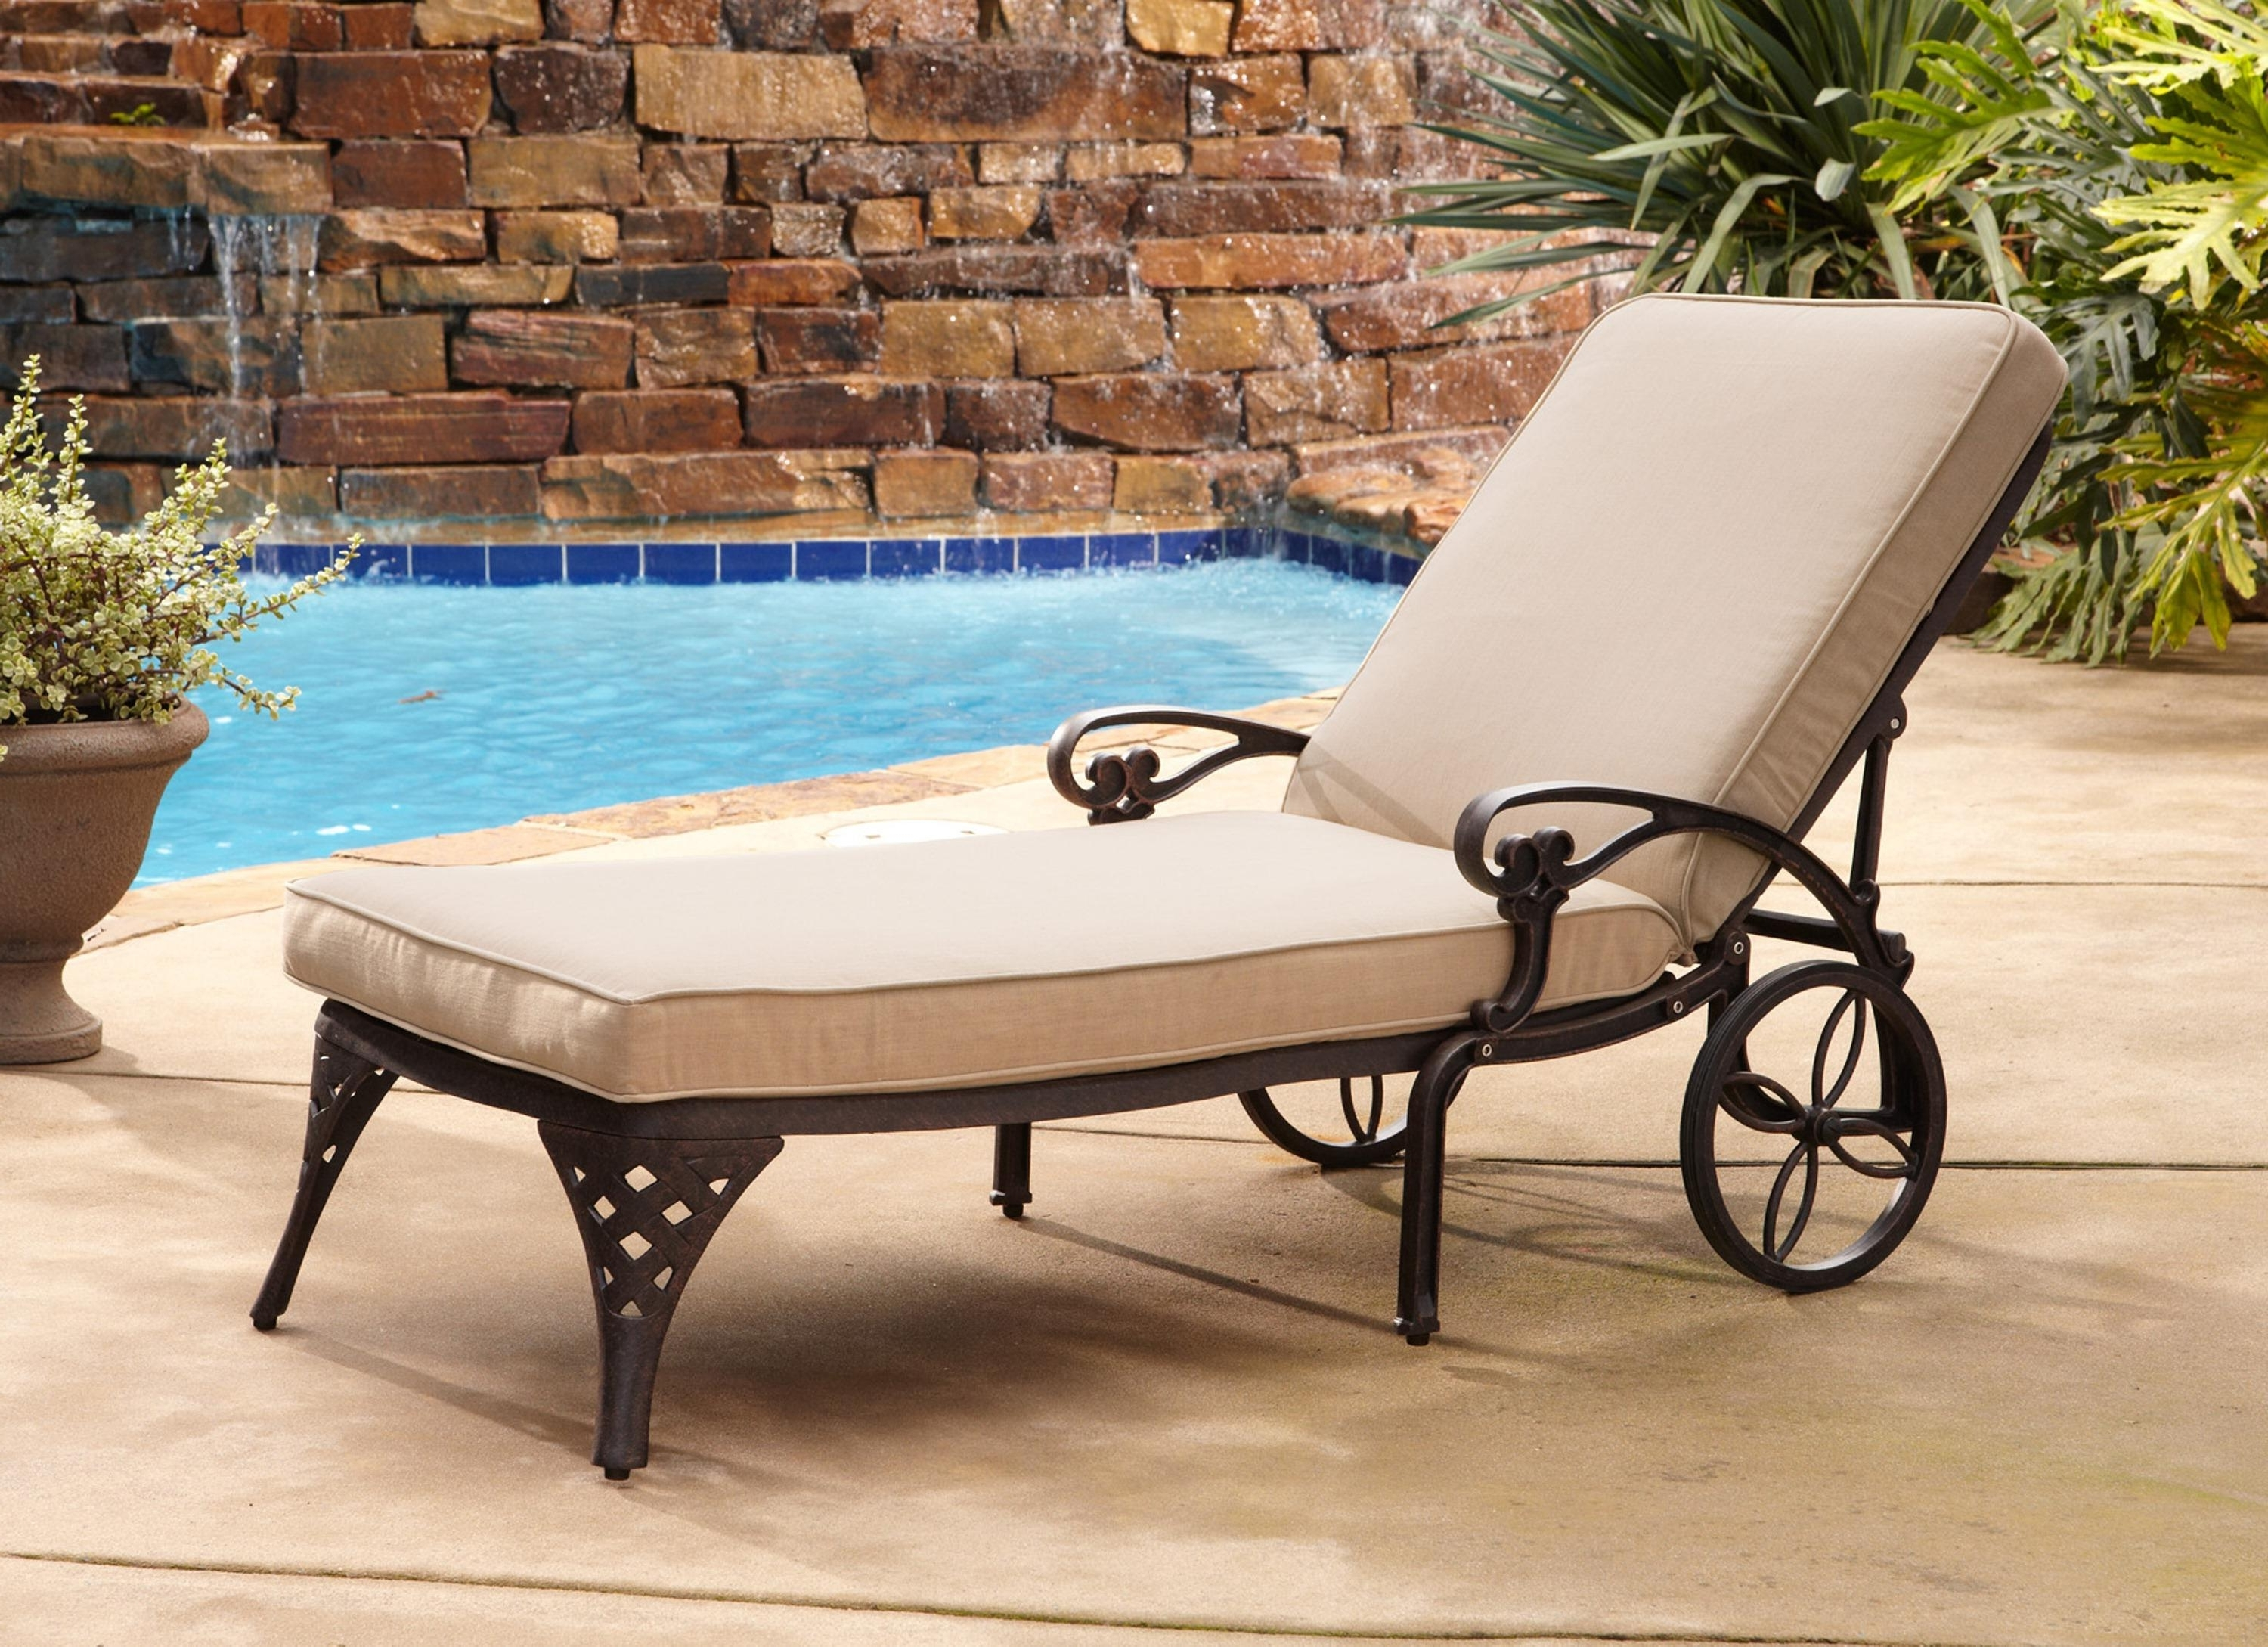 Outdoor Metal Chaise Lounge Chairs Intended For Well Known Metal Chaise Lounge Chairs With Wheels • Lounge Chairs Ideas (View 6 of 15)